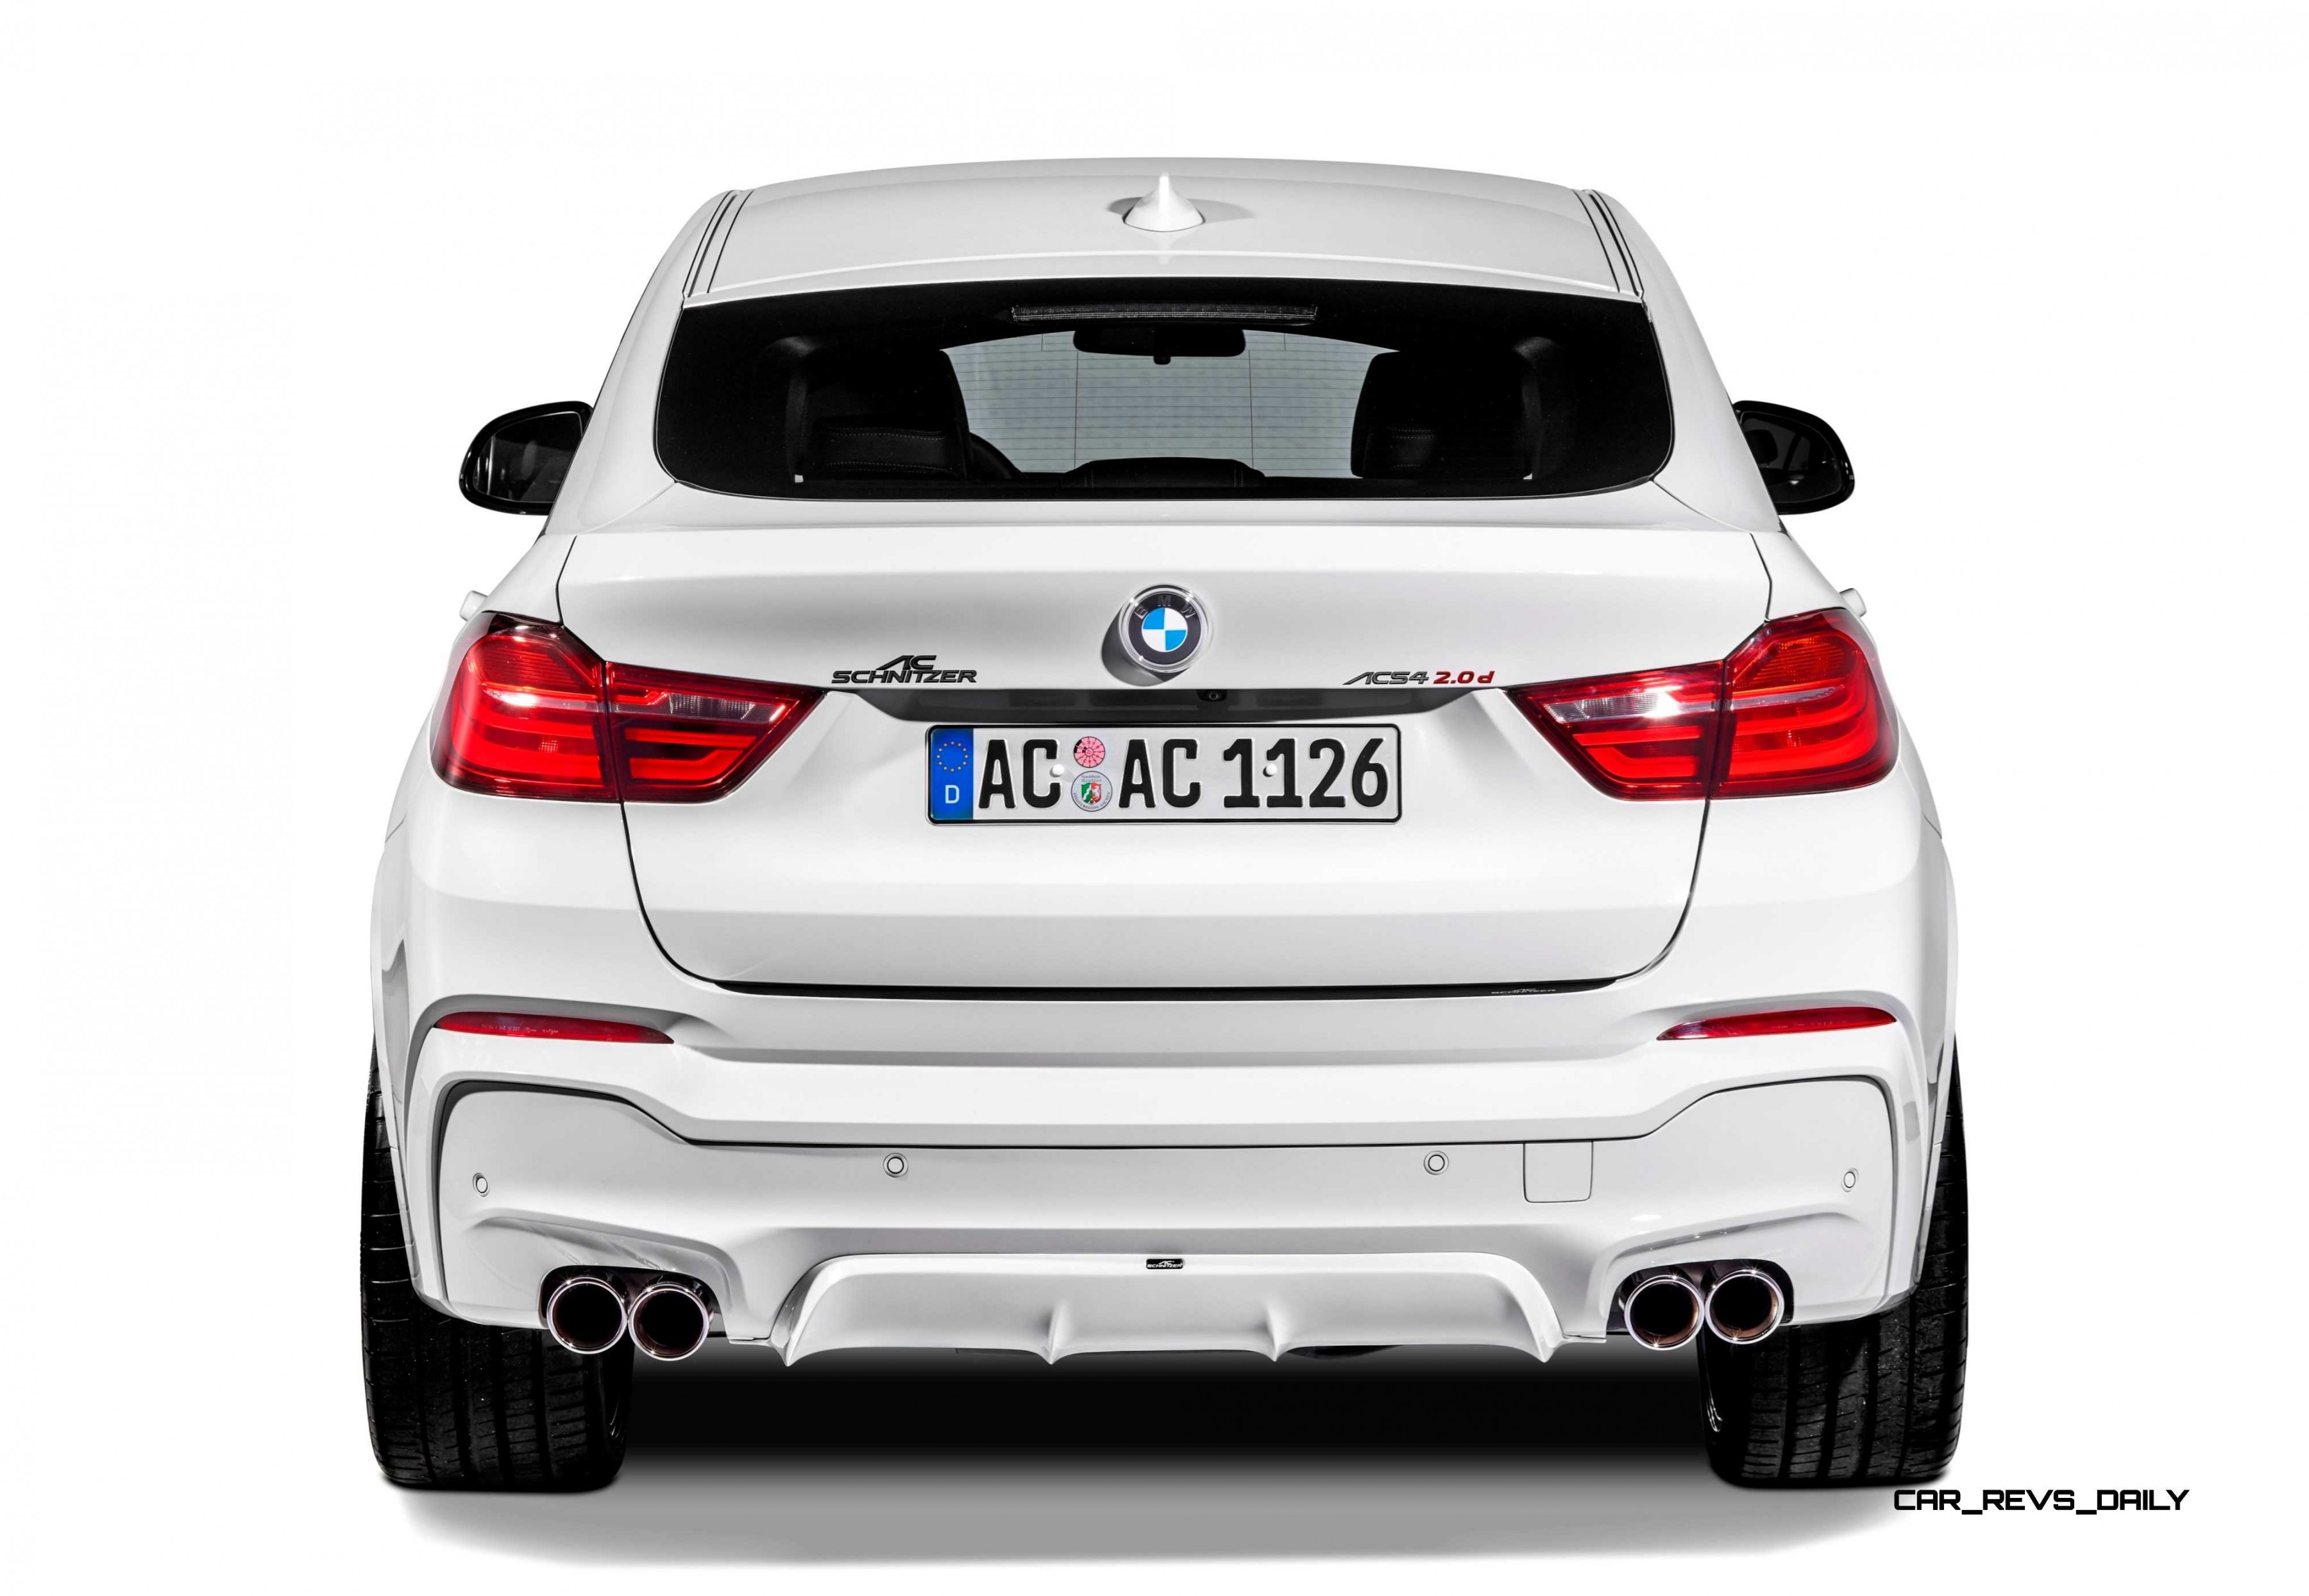 AC Schnitzer BMW X4 Revealed Today In Zurich With Exterior and